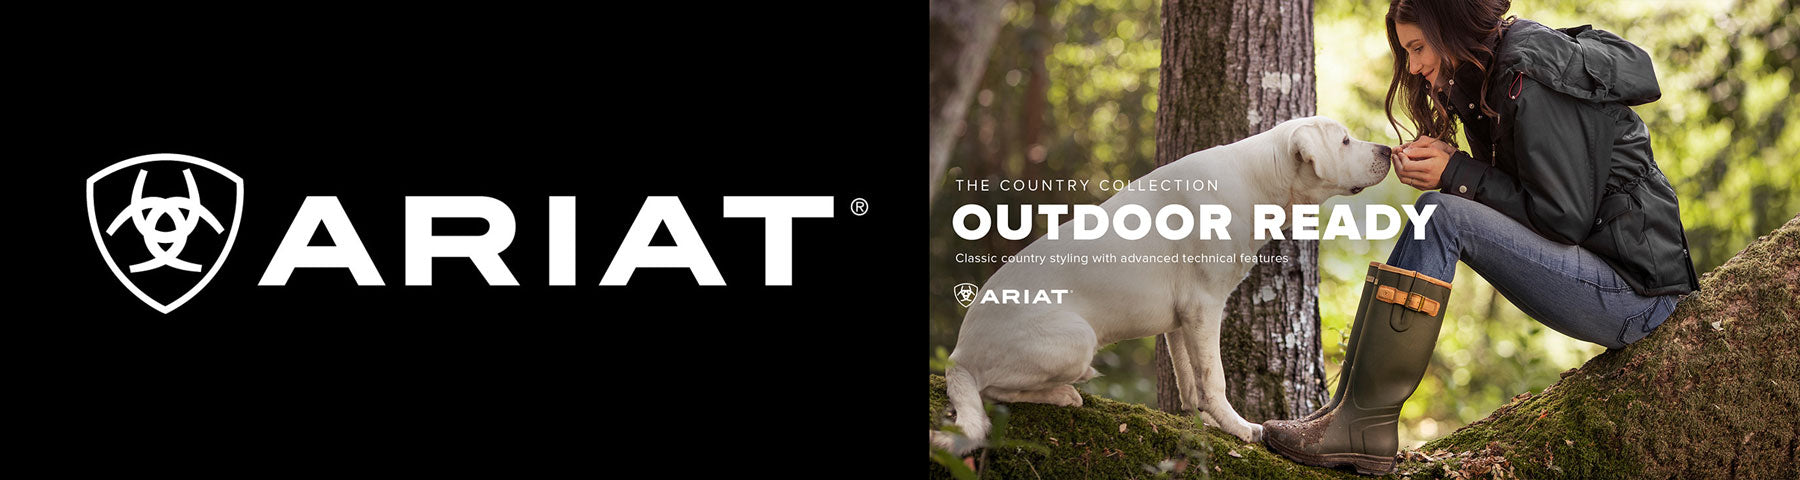 Ariat - Outdoor Ready